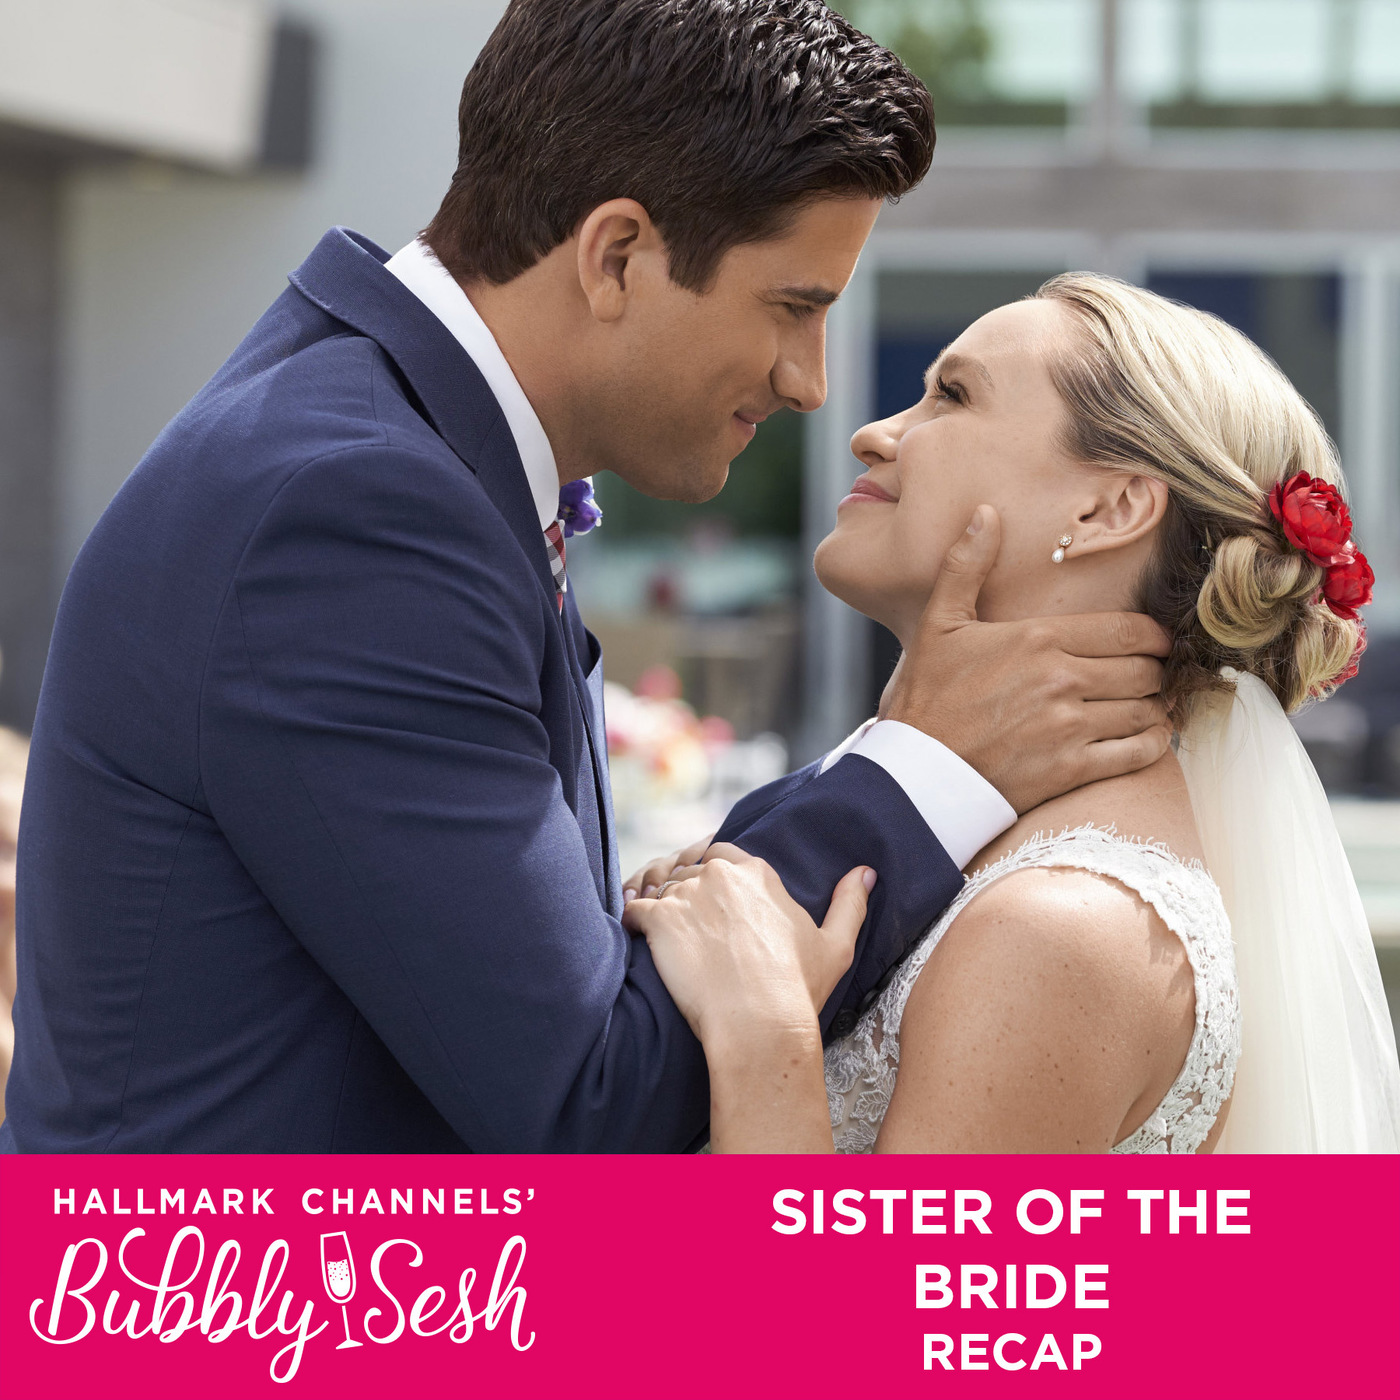 Sister of the Bride Recap